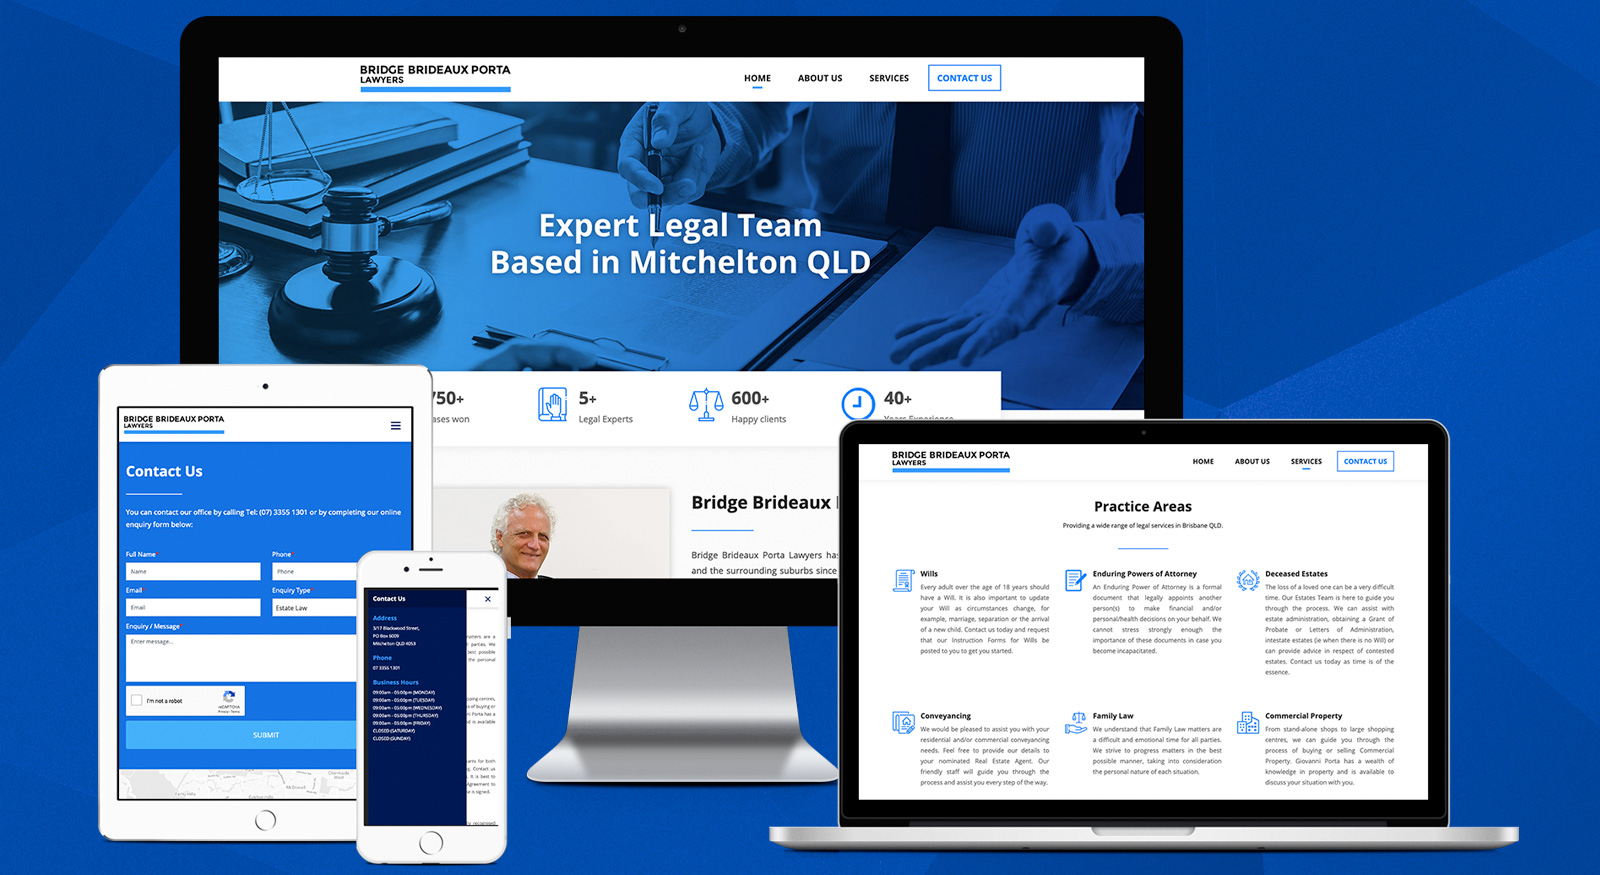 brisbane-lawyers-bridge-brideaux-porta-law-firm-mitchelton-qld-web-design-onepoint-software-solutions